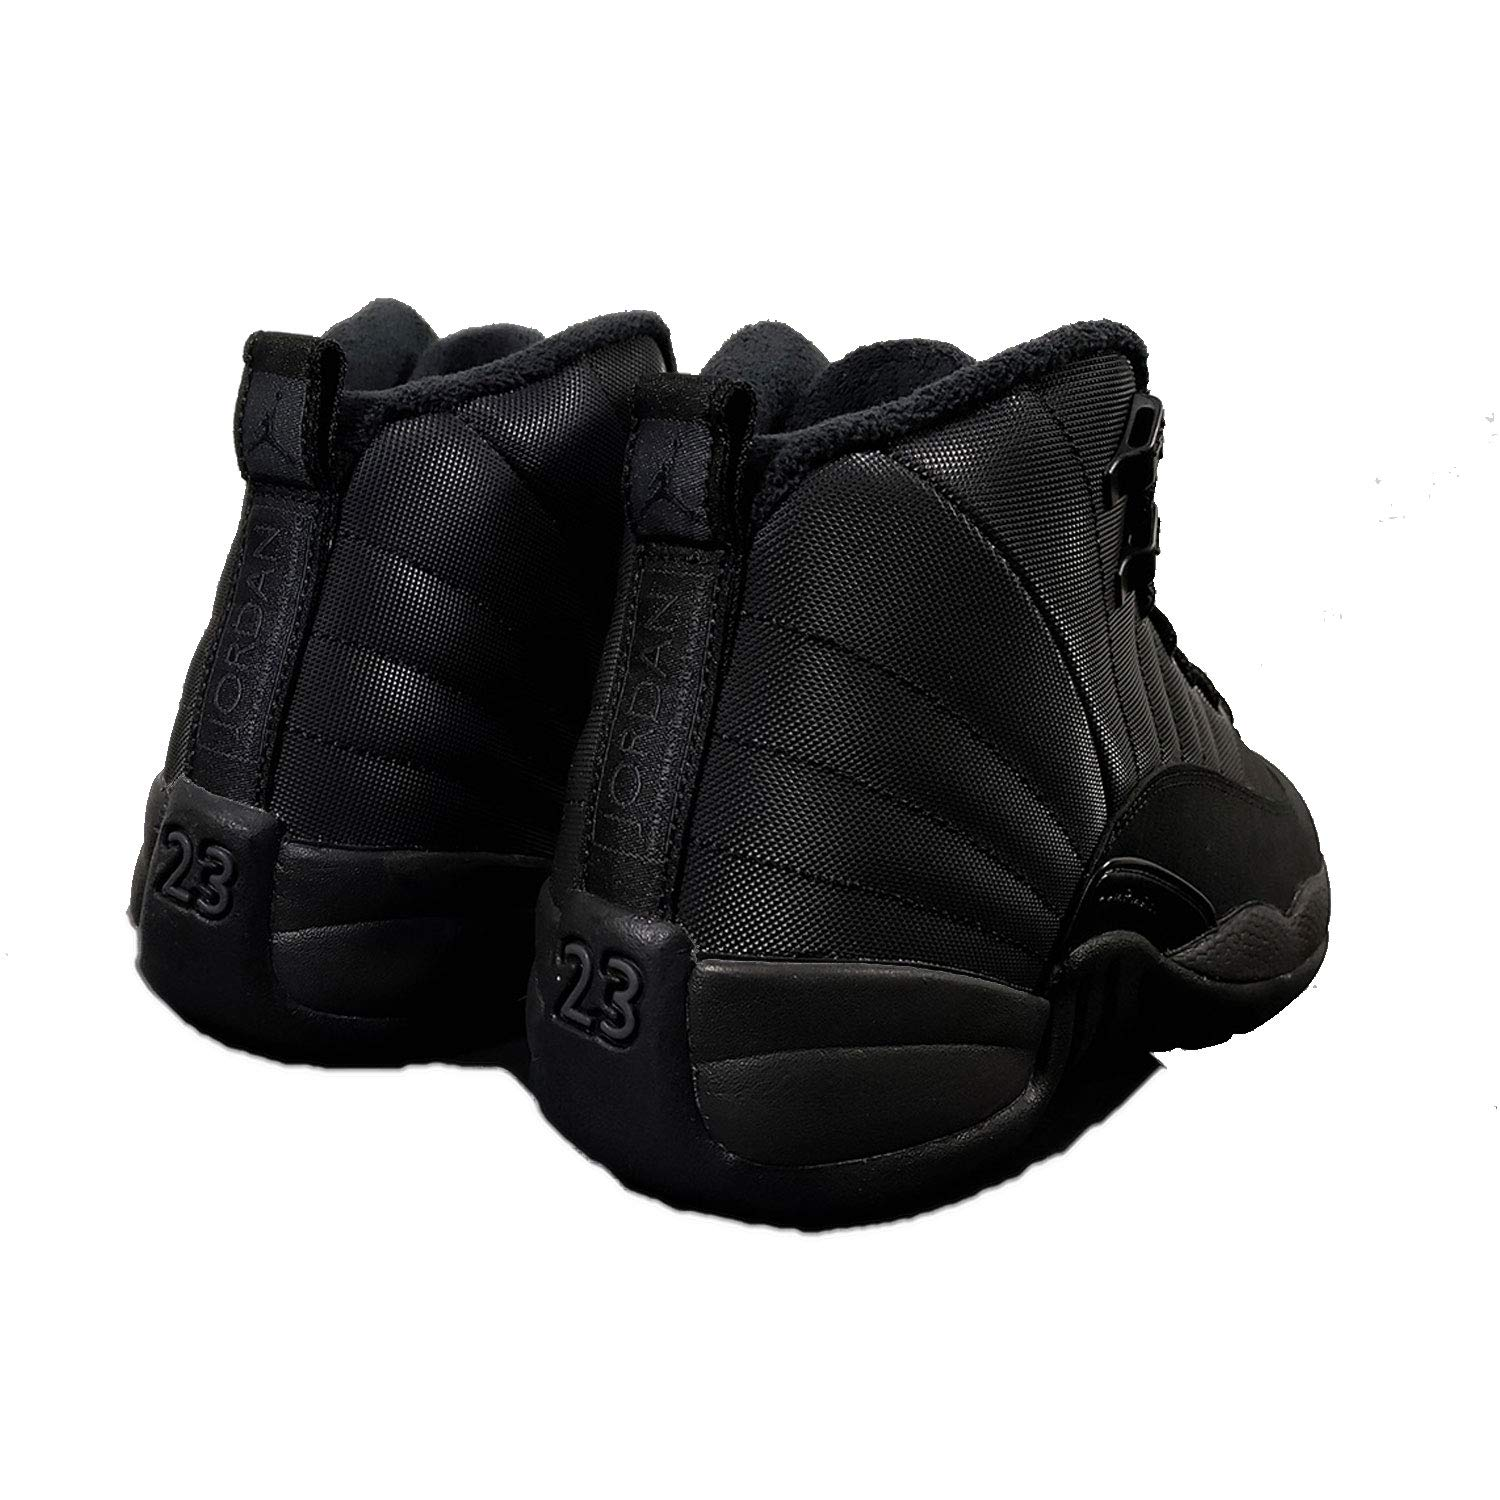 brand new 23211 9e91b BQ6852-001 Nike Air Jordan 12 Retro WNTR GS Kids Casual Shoes Winterized  Black BQ6852-001 5Y